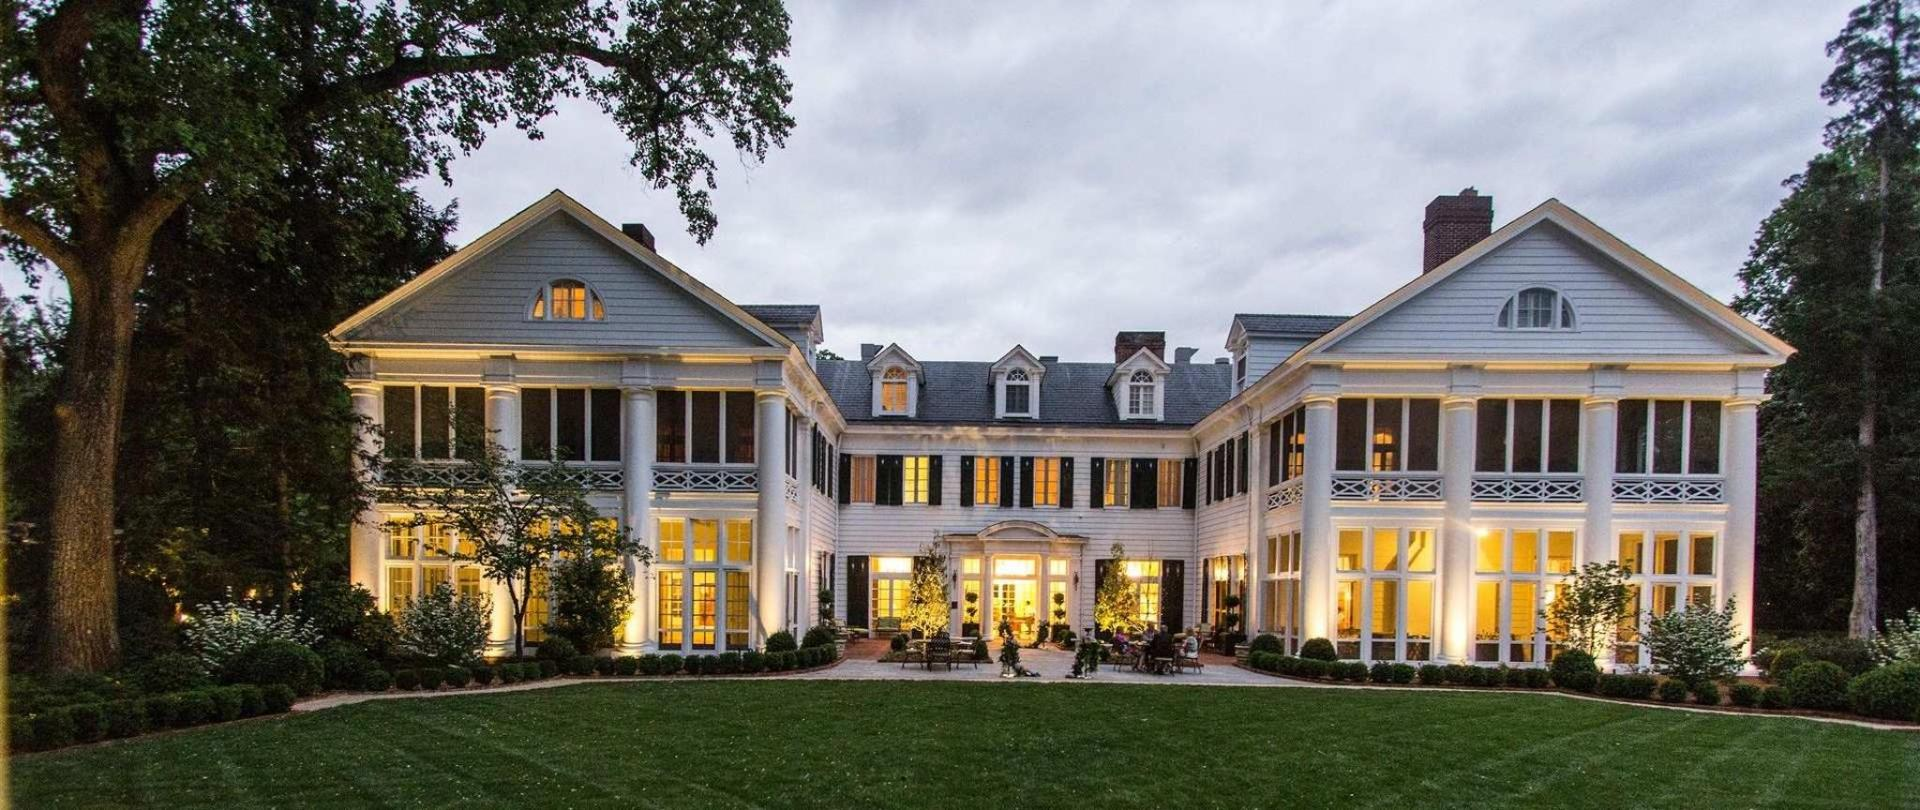 The Duke Mansion Bed And Breakfast In Charlotte Nc